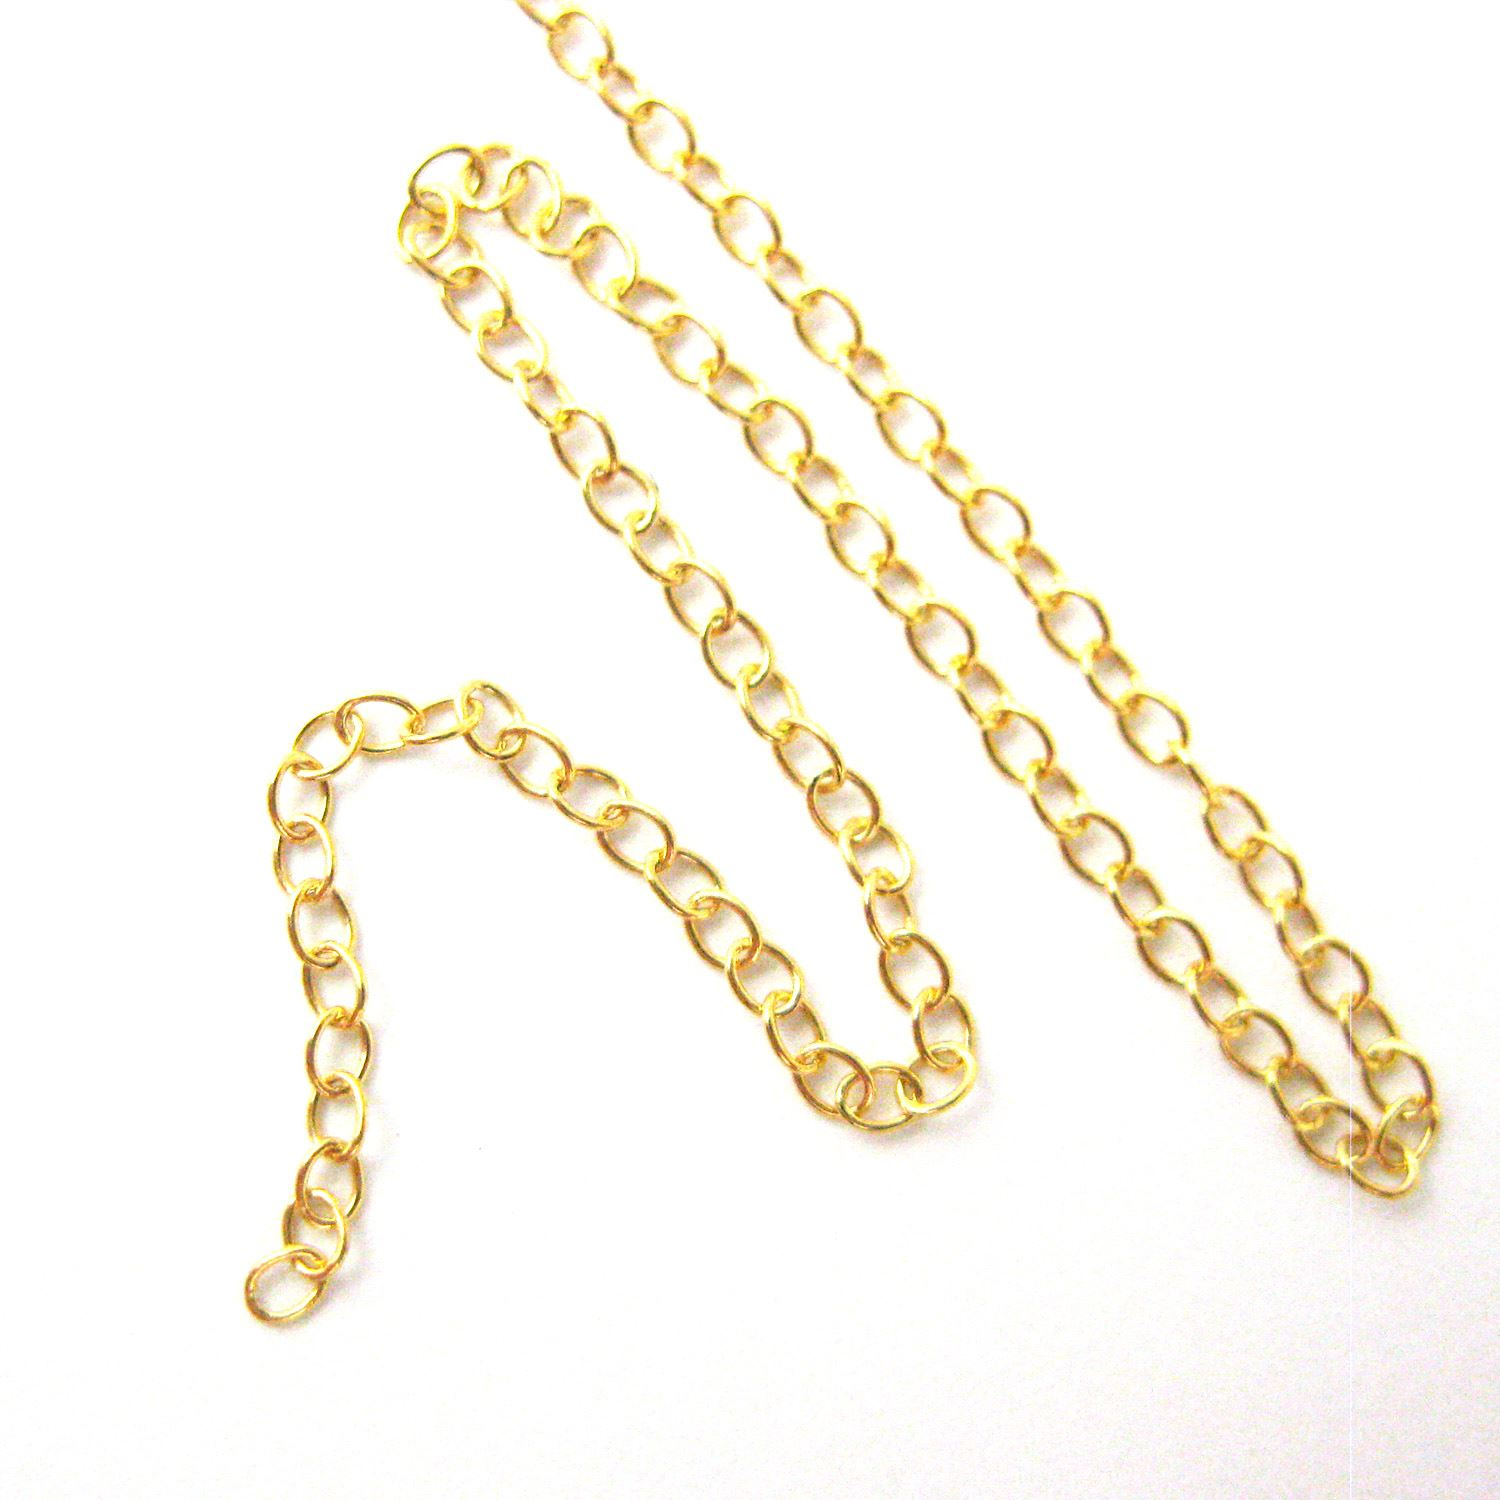 Gold Chain, Vermeil Sterling Silver Chain- Wholesale Bulk Chain - 2mm Strong Cable Oval Chain - Strong Chain - Unfinished Bulk Chain (sold per foot)